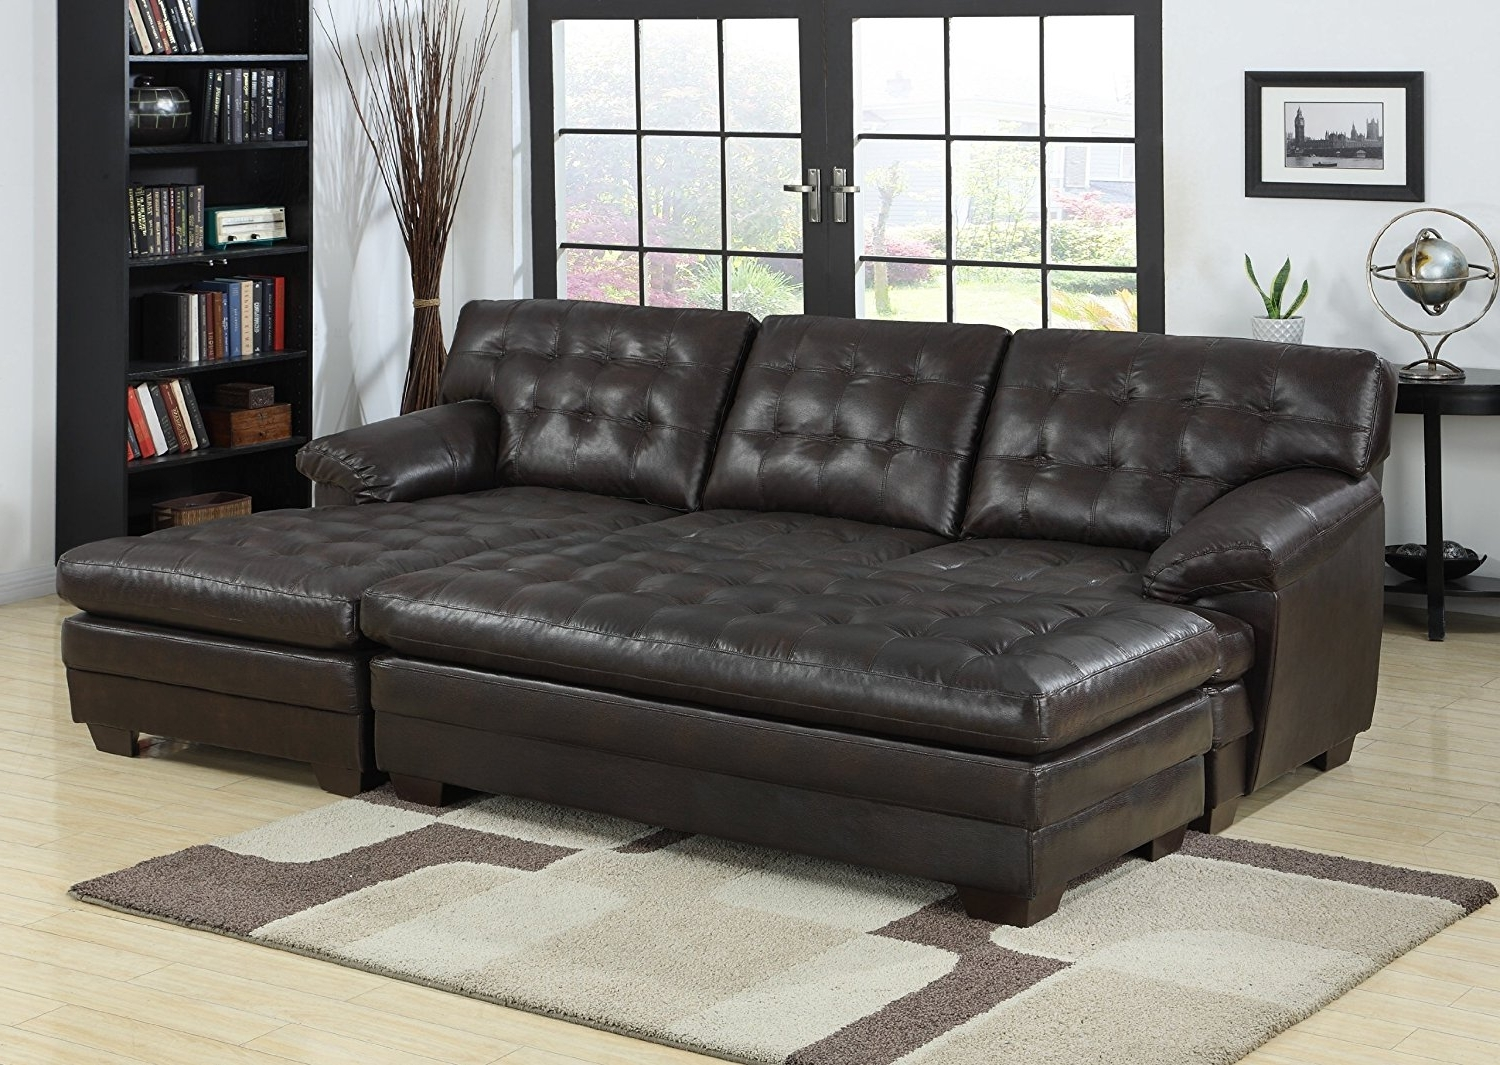 2 Piece Sectional Sofas With Chaise For Famous Amazon: Homelegance 9739 Channel Tufted 2 Piece Sectional Sofa (View 12 of 15)